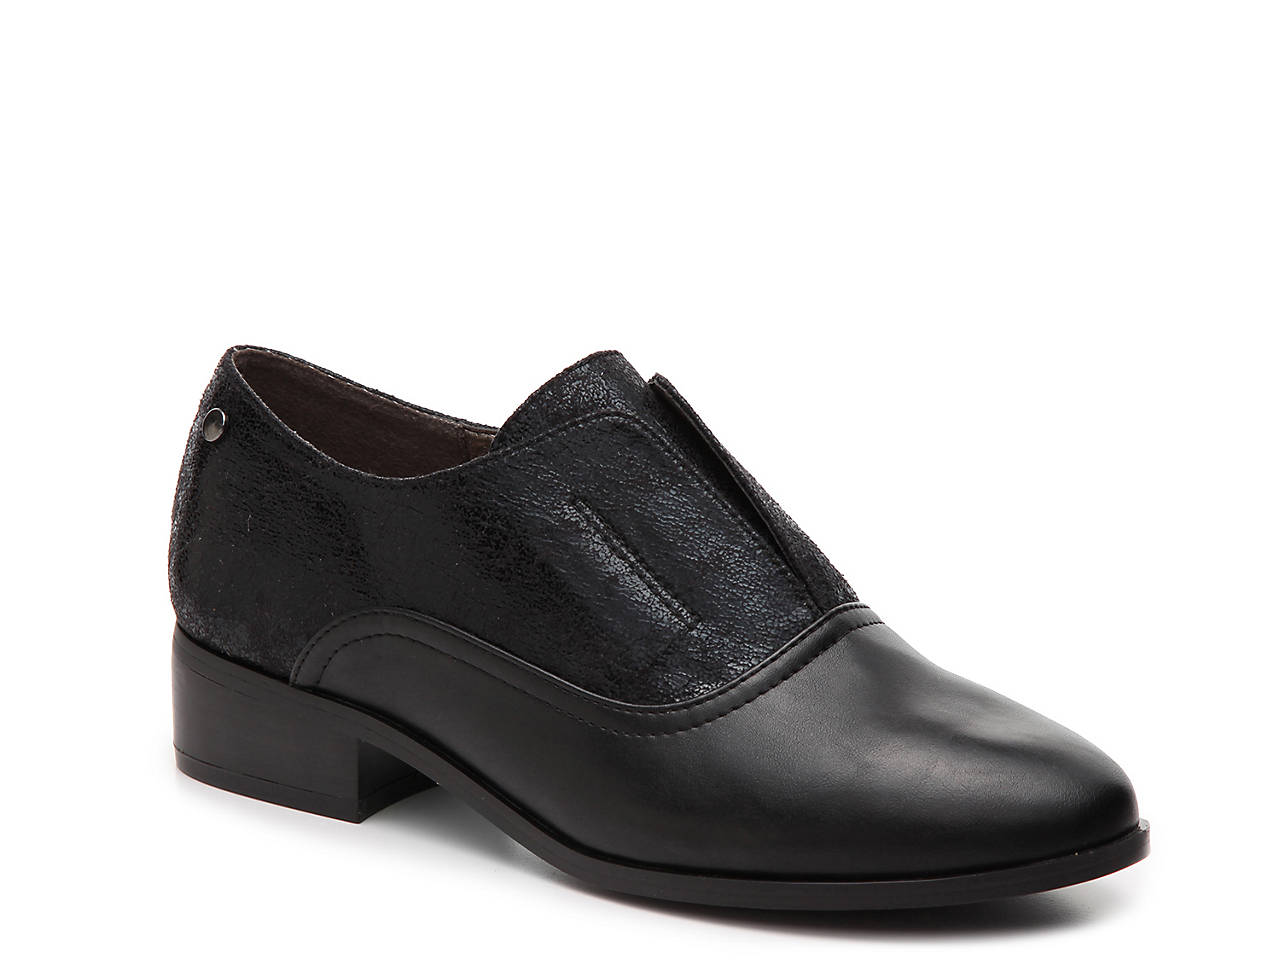 laceless oxford shoes Pictures Sale Online Outlet Fashion Style N2KGz6